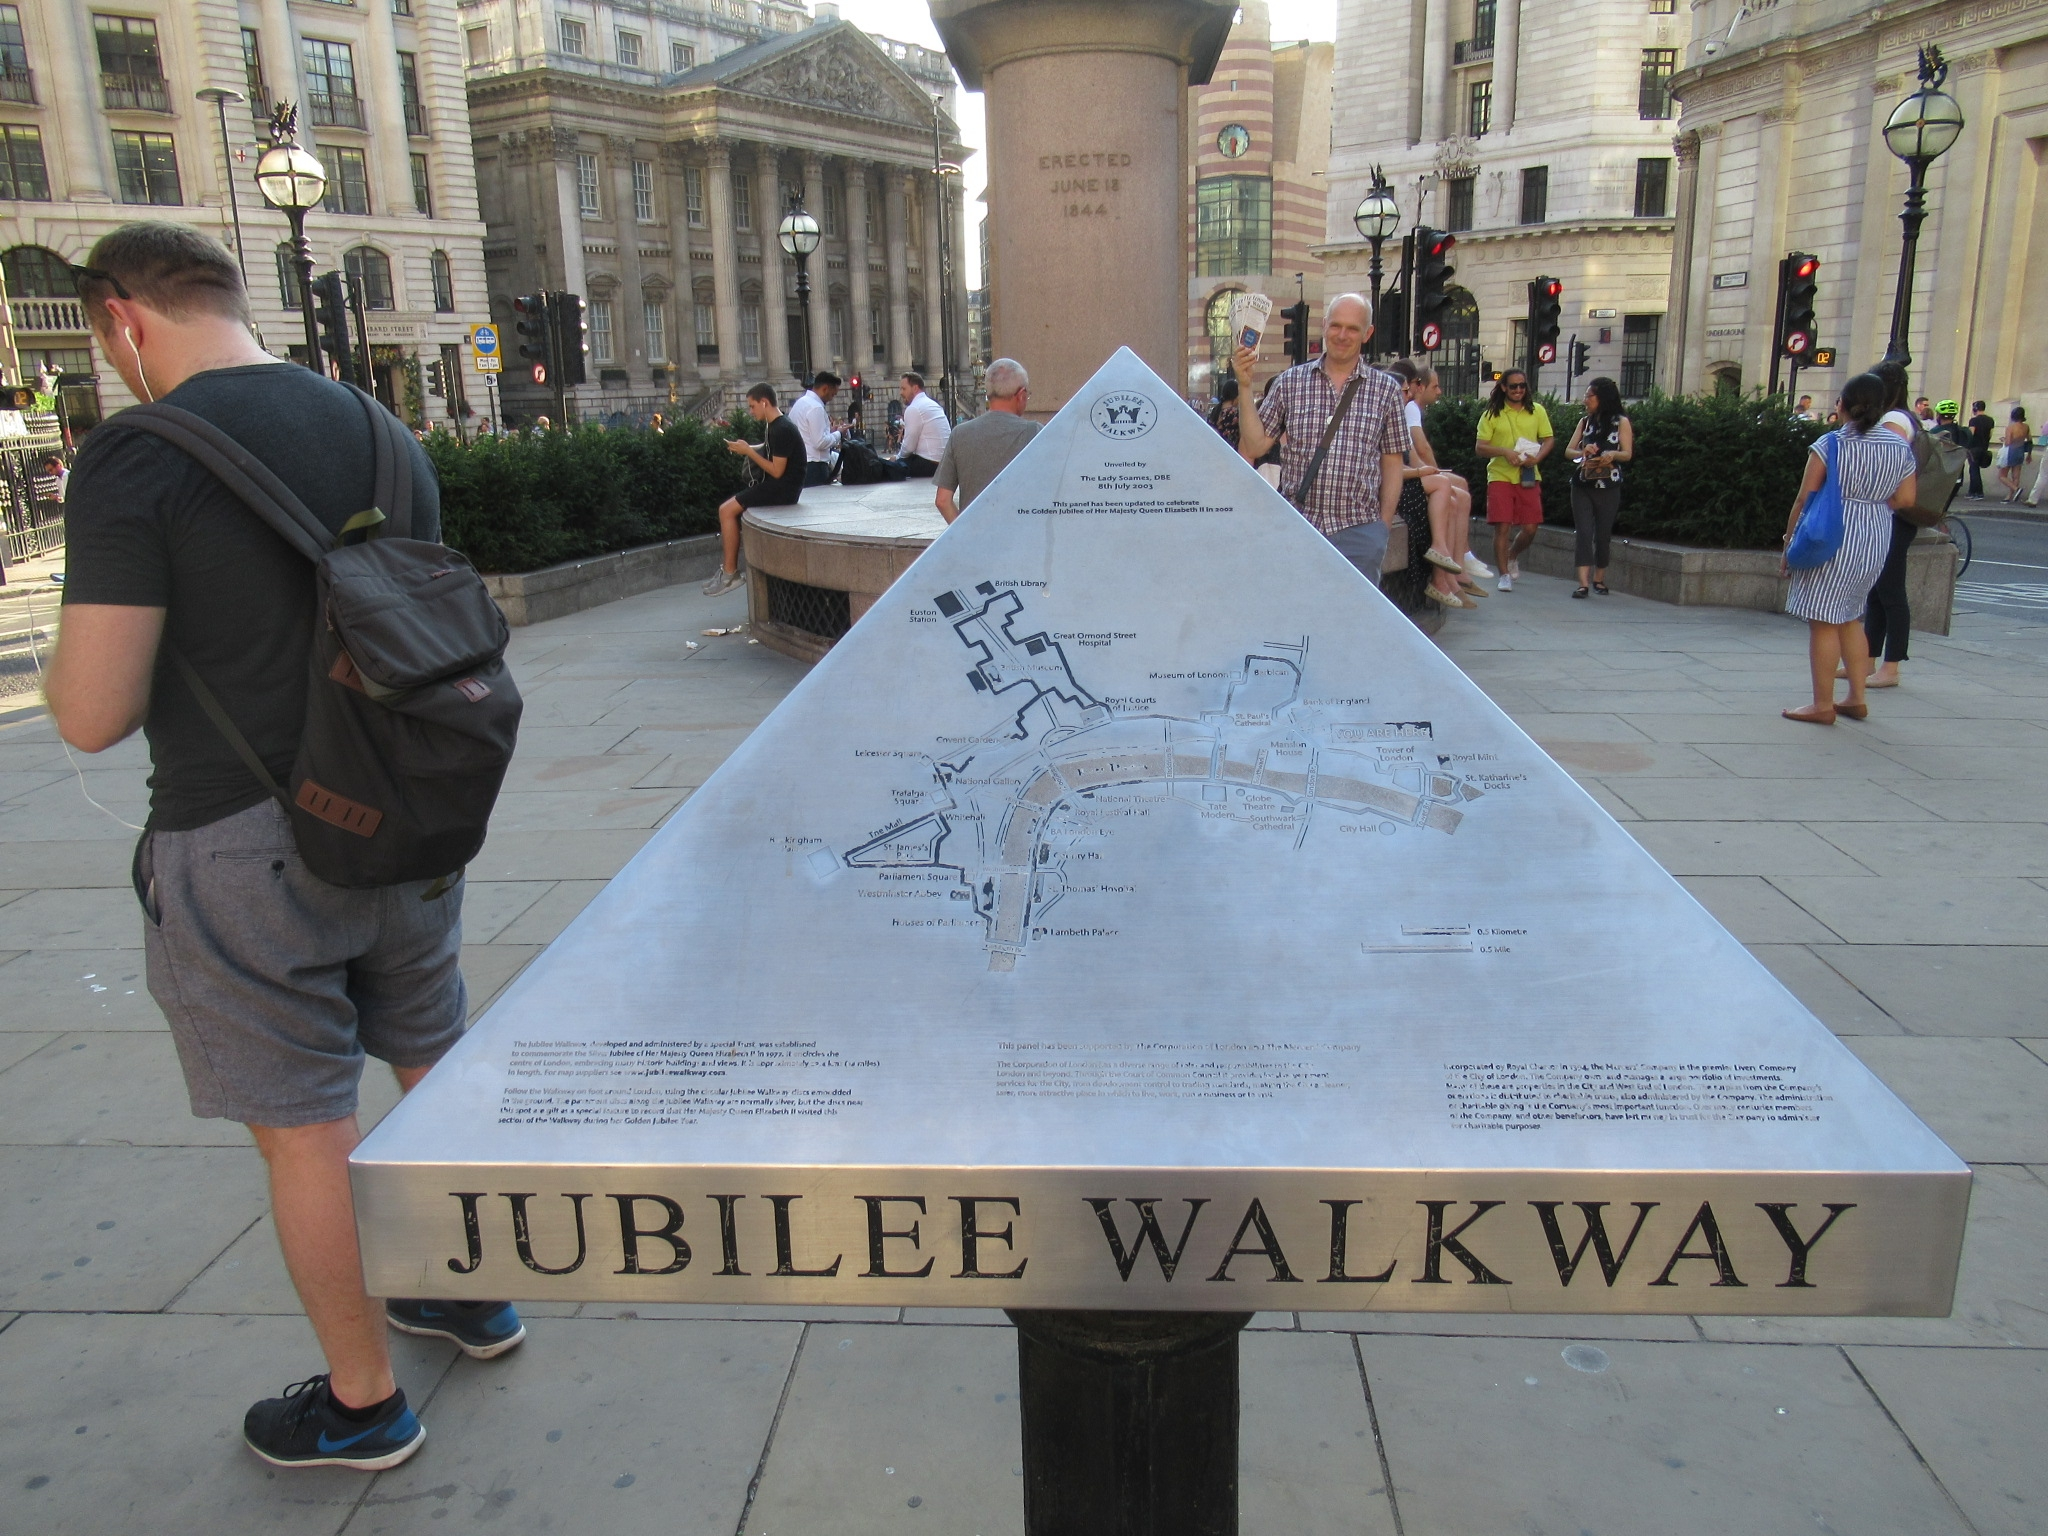 Royal Exchange Jubilee Walkway Marker